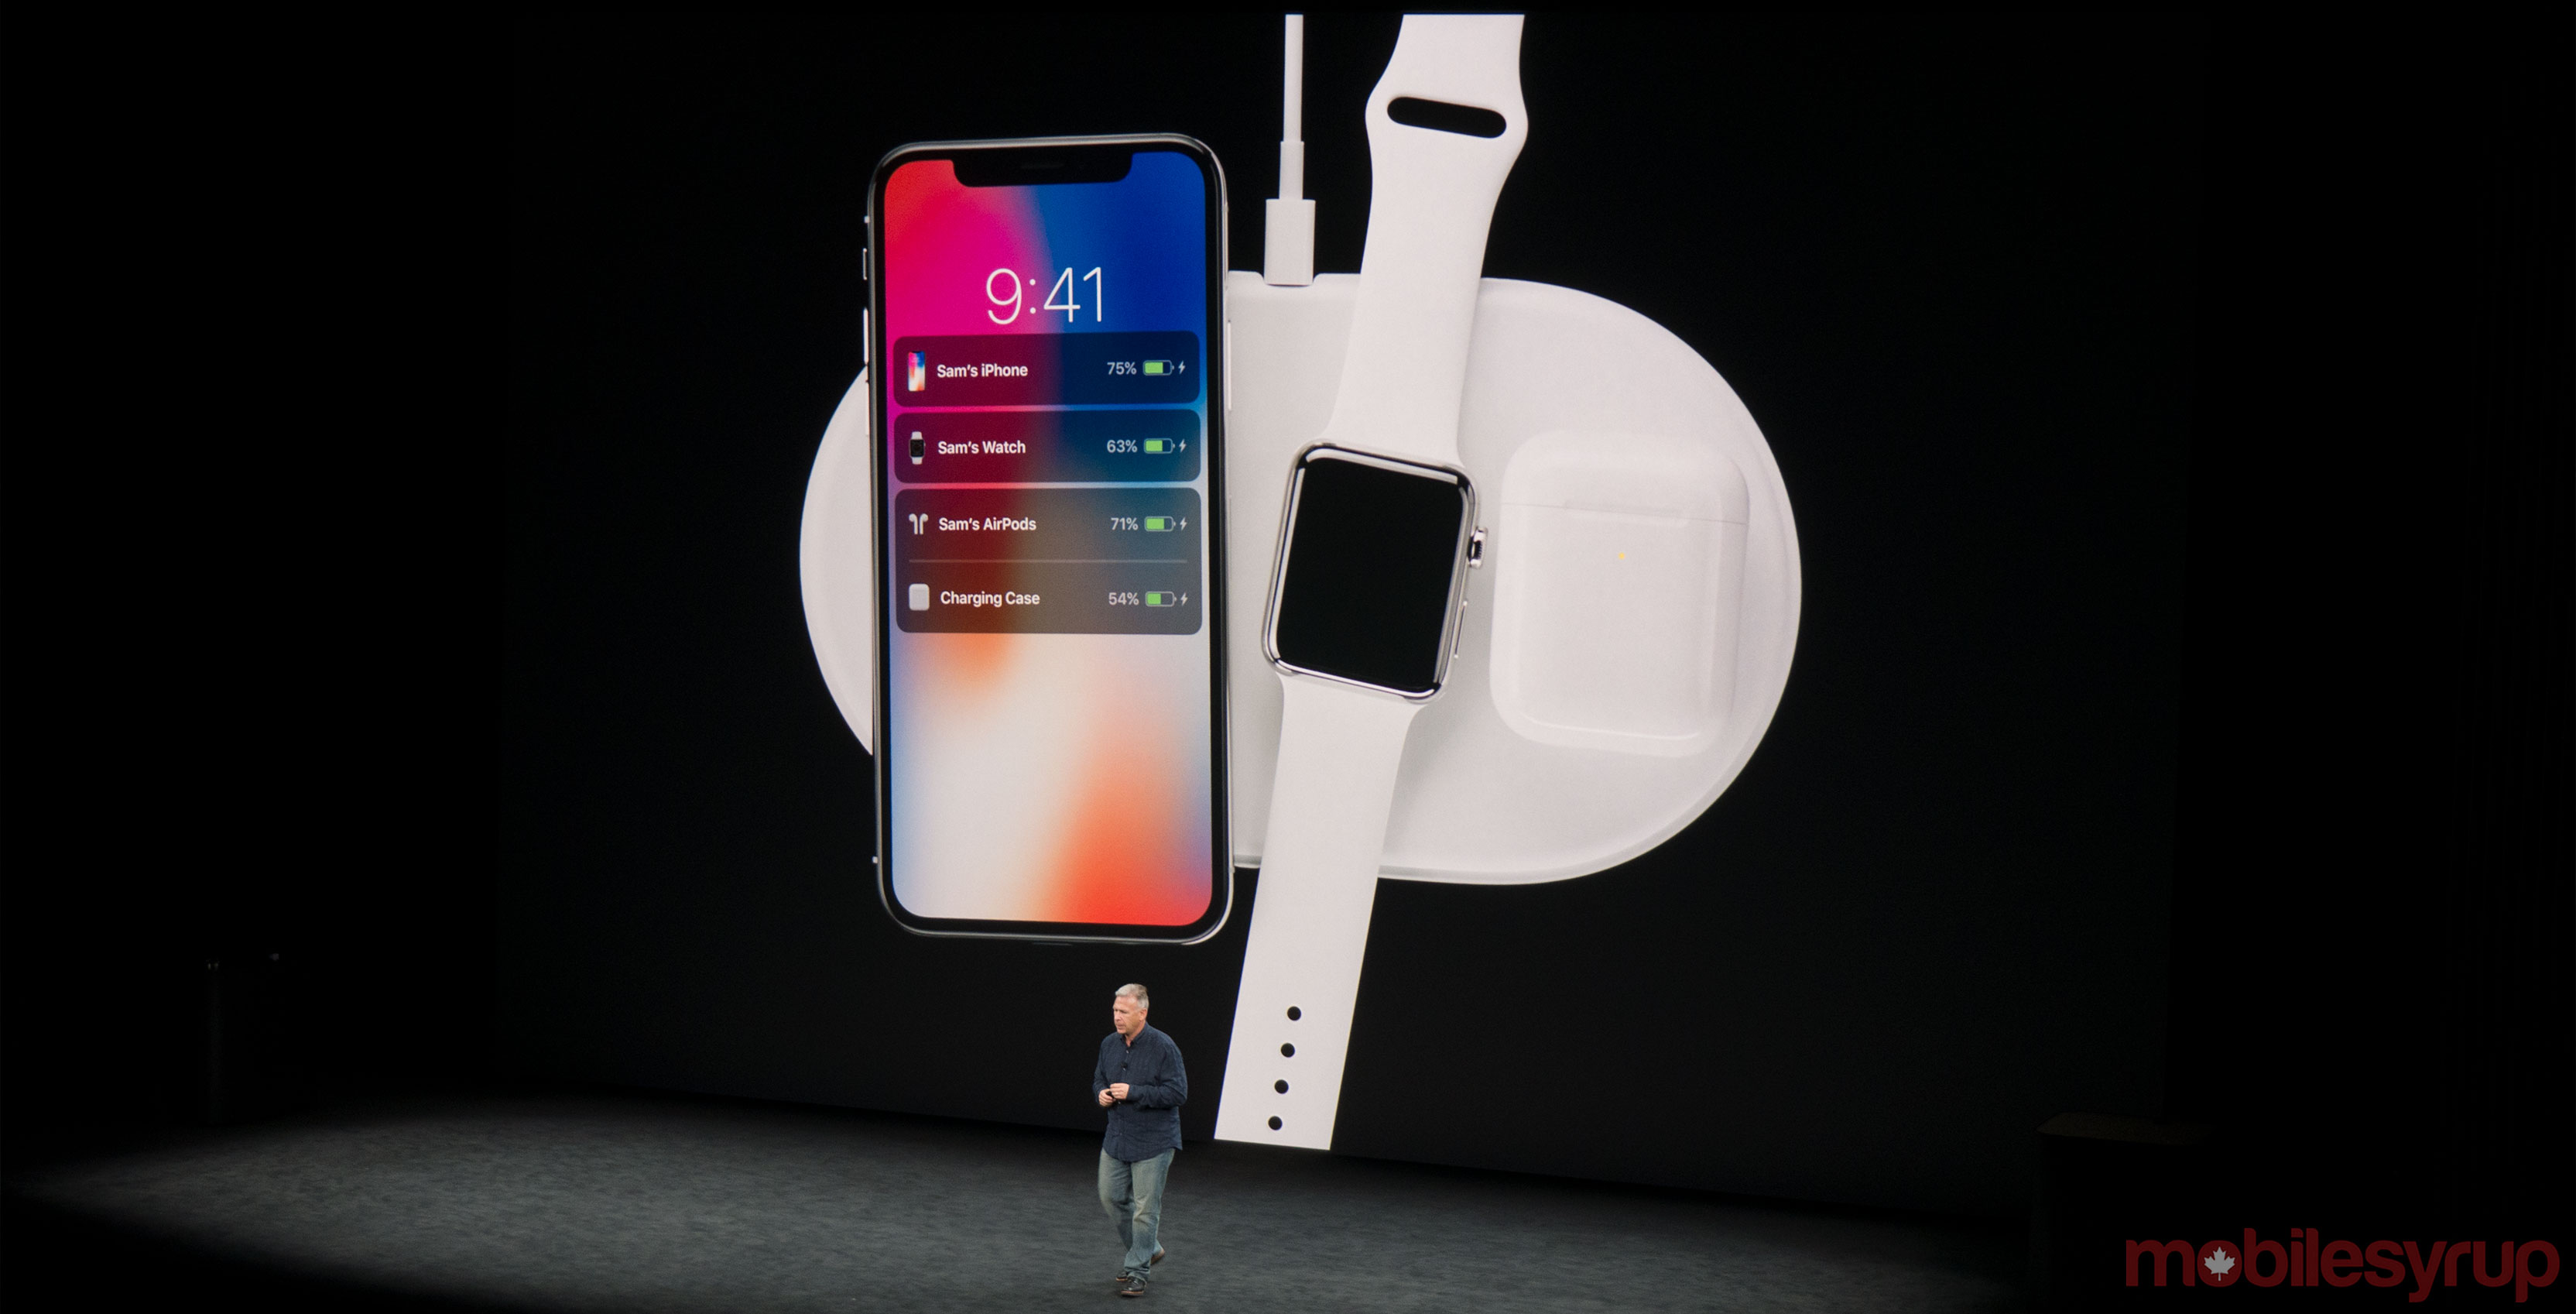 AirPower charging pad